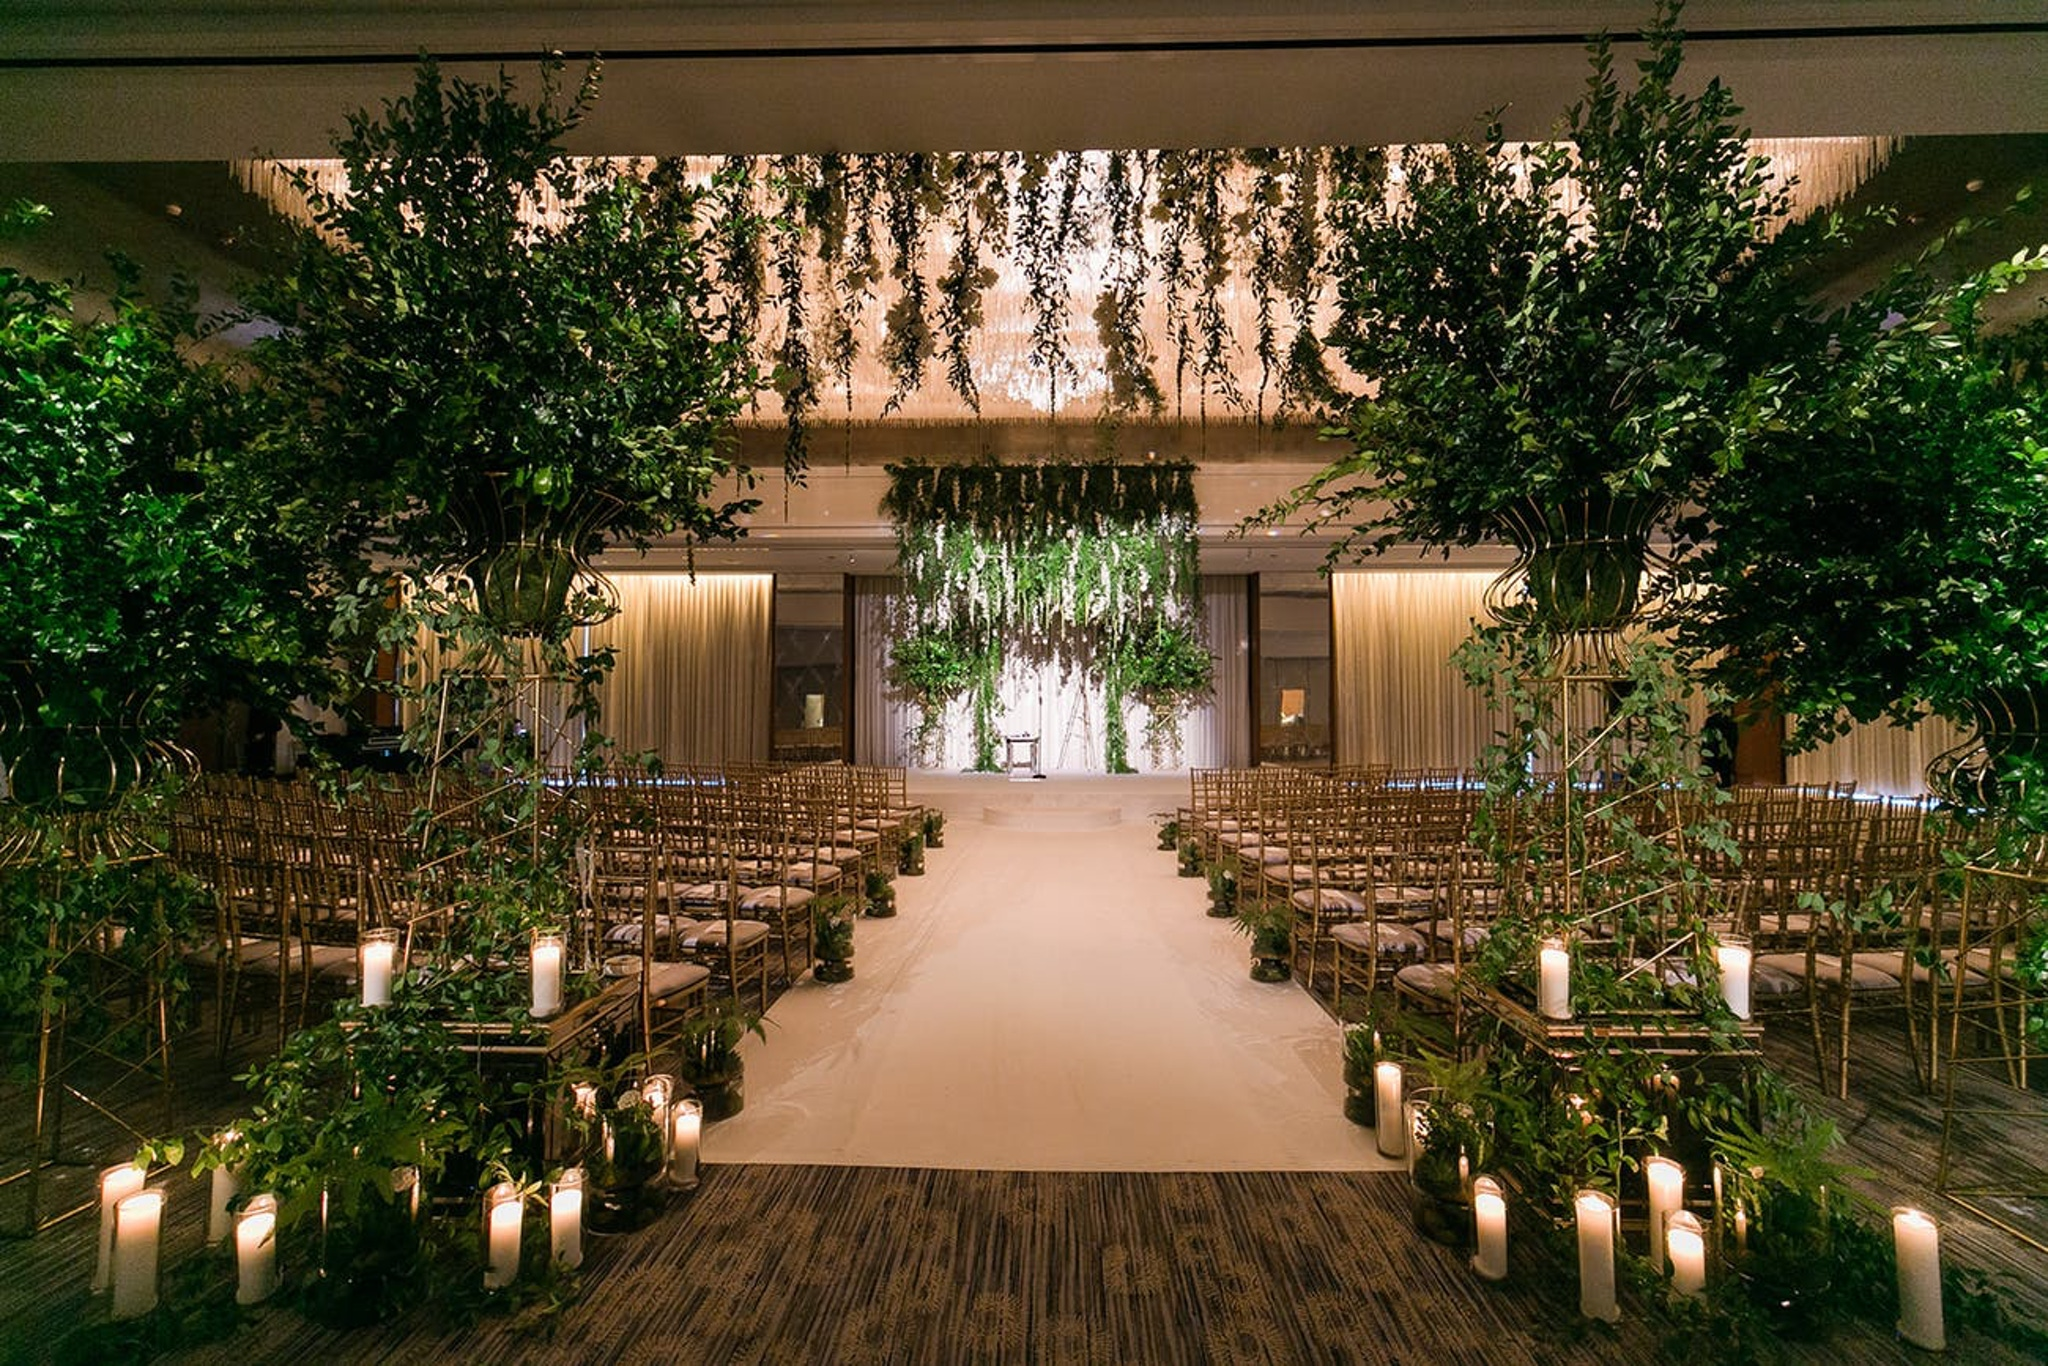 indoor wedding ceremony with greenery and candles lining the aisle at the Ritz Carlton in Chicago